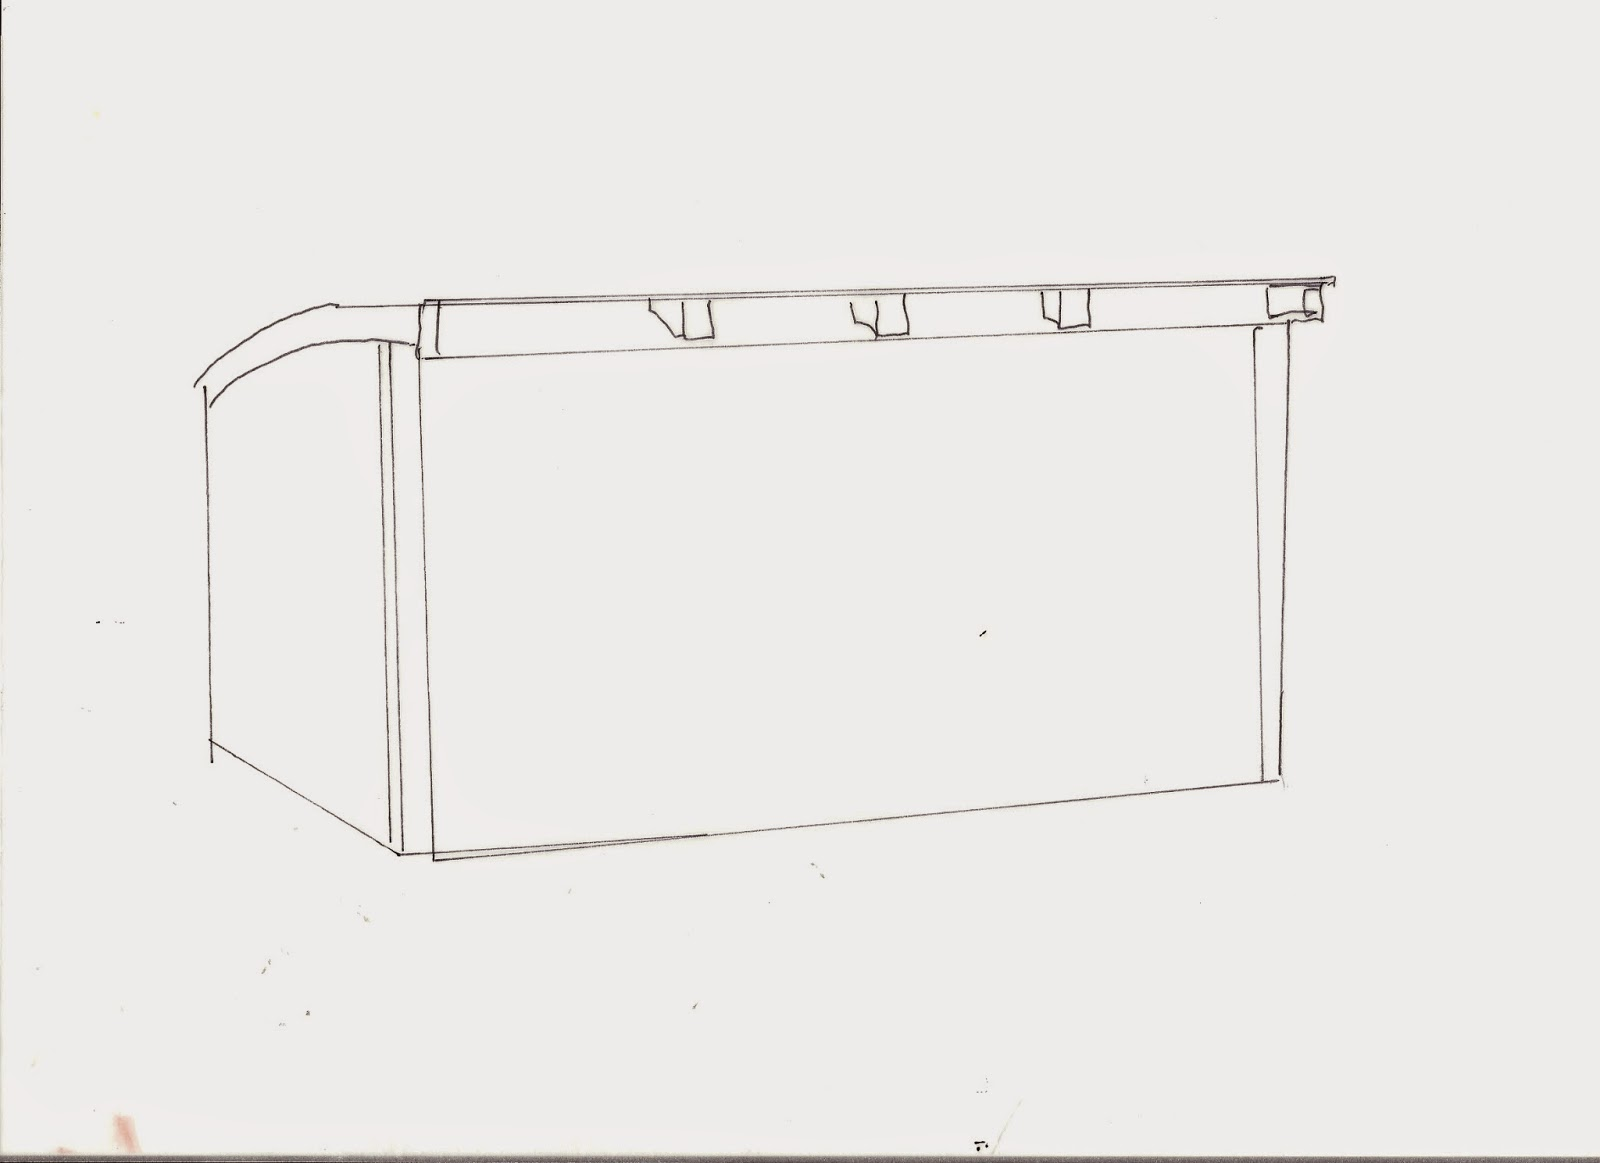 Sketch of an outline of a shed.